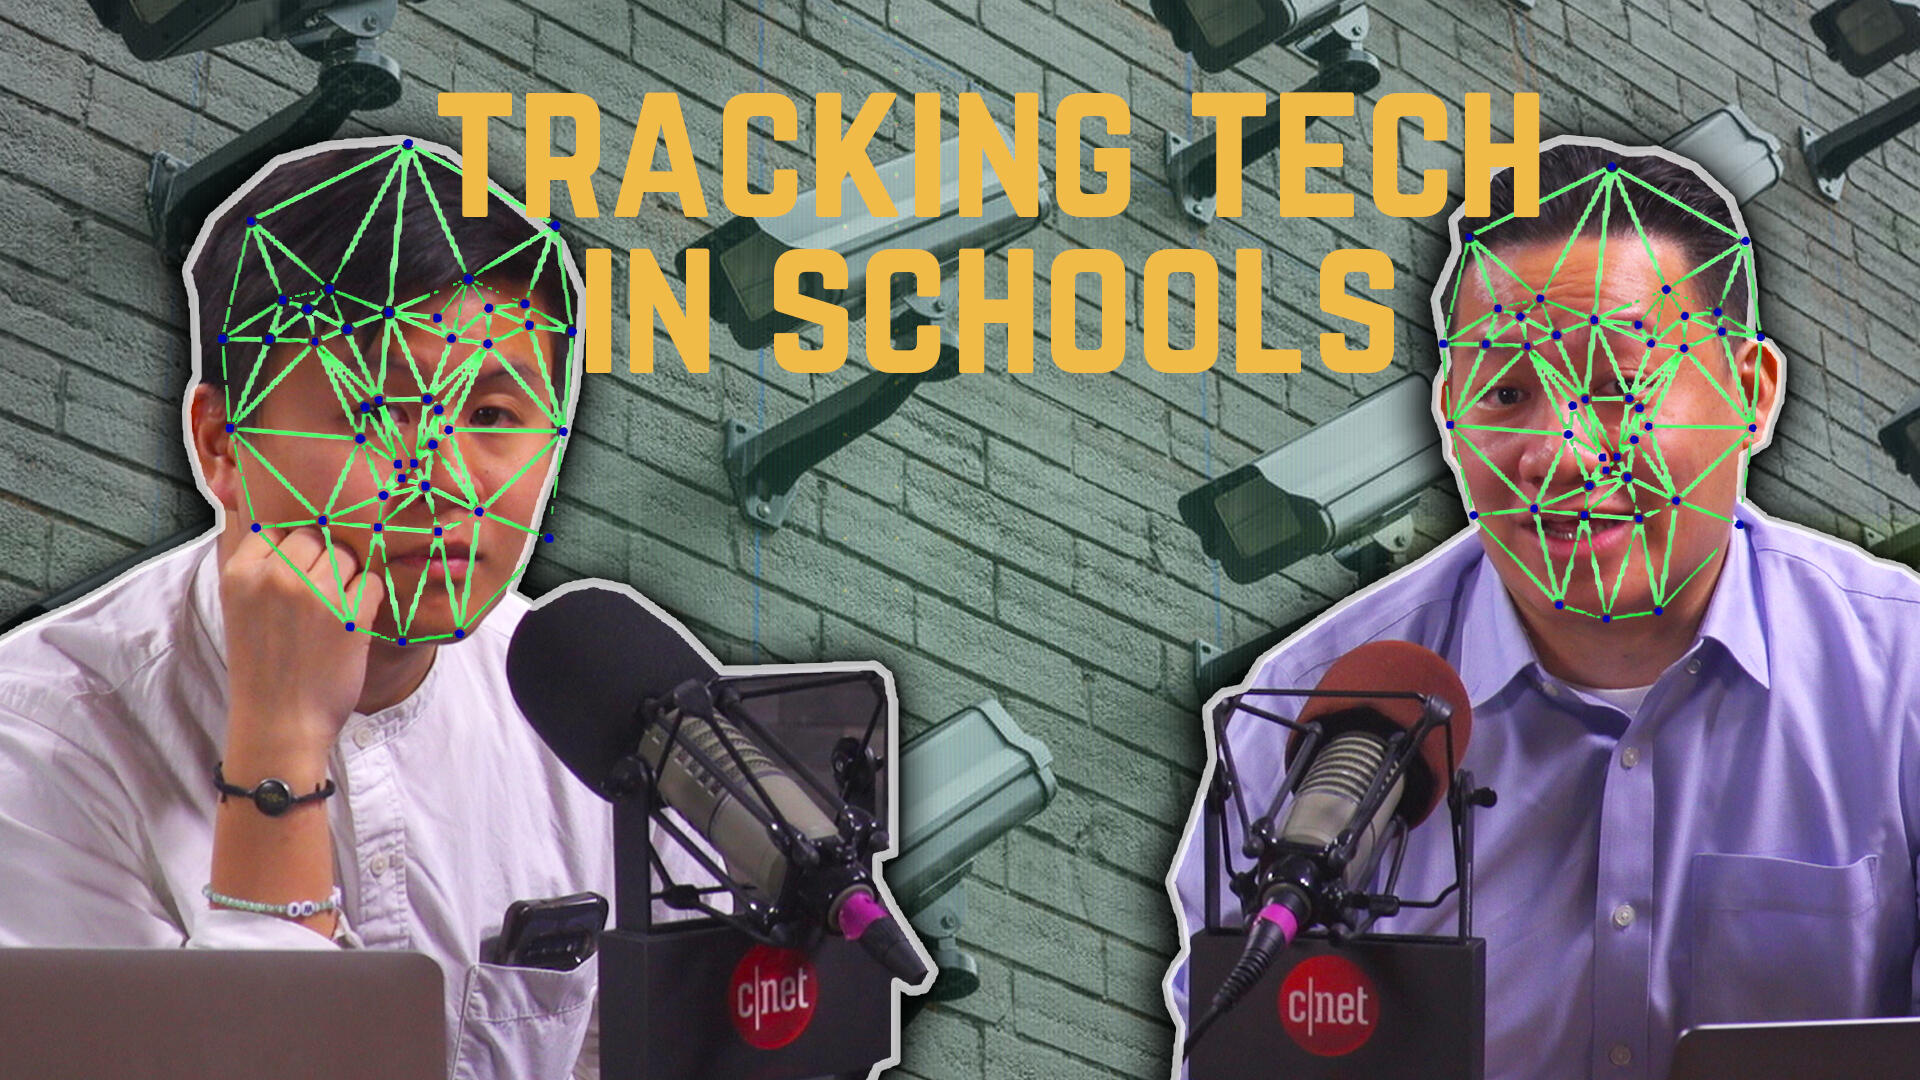 Video: Schools are tracking kids and that raises all kinds of questions (Daily Charge, 2/25/2020)